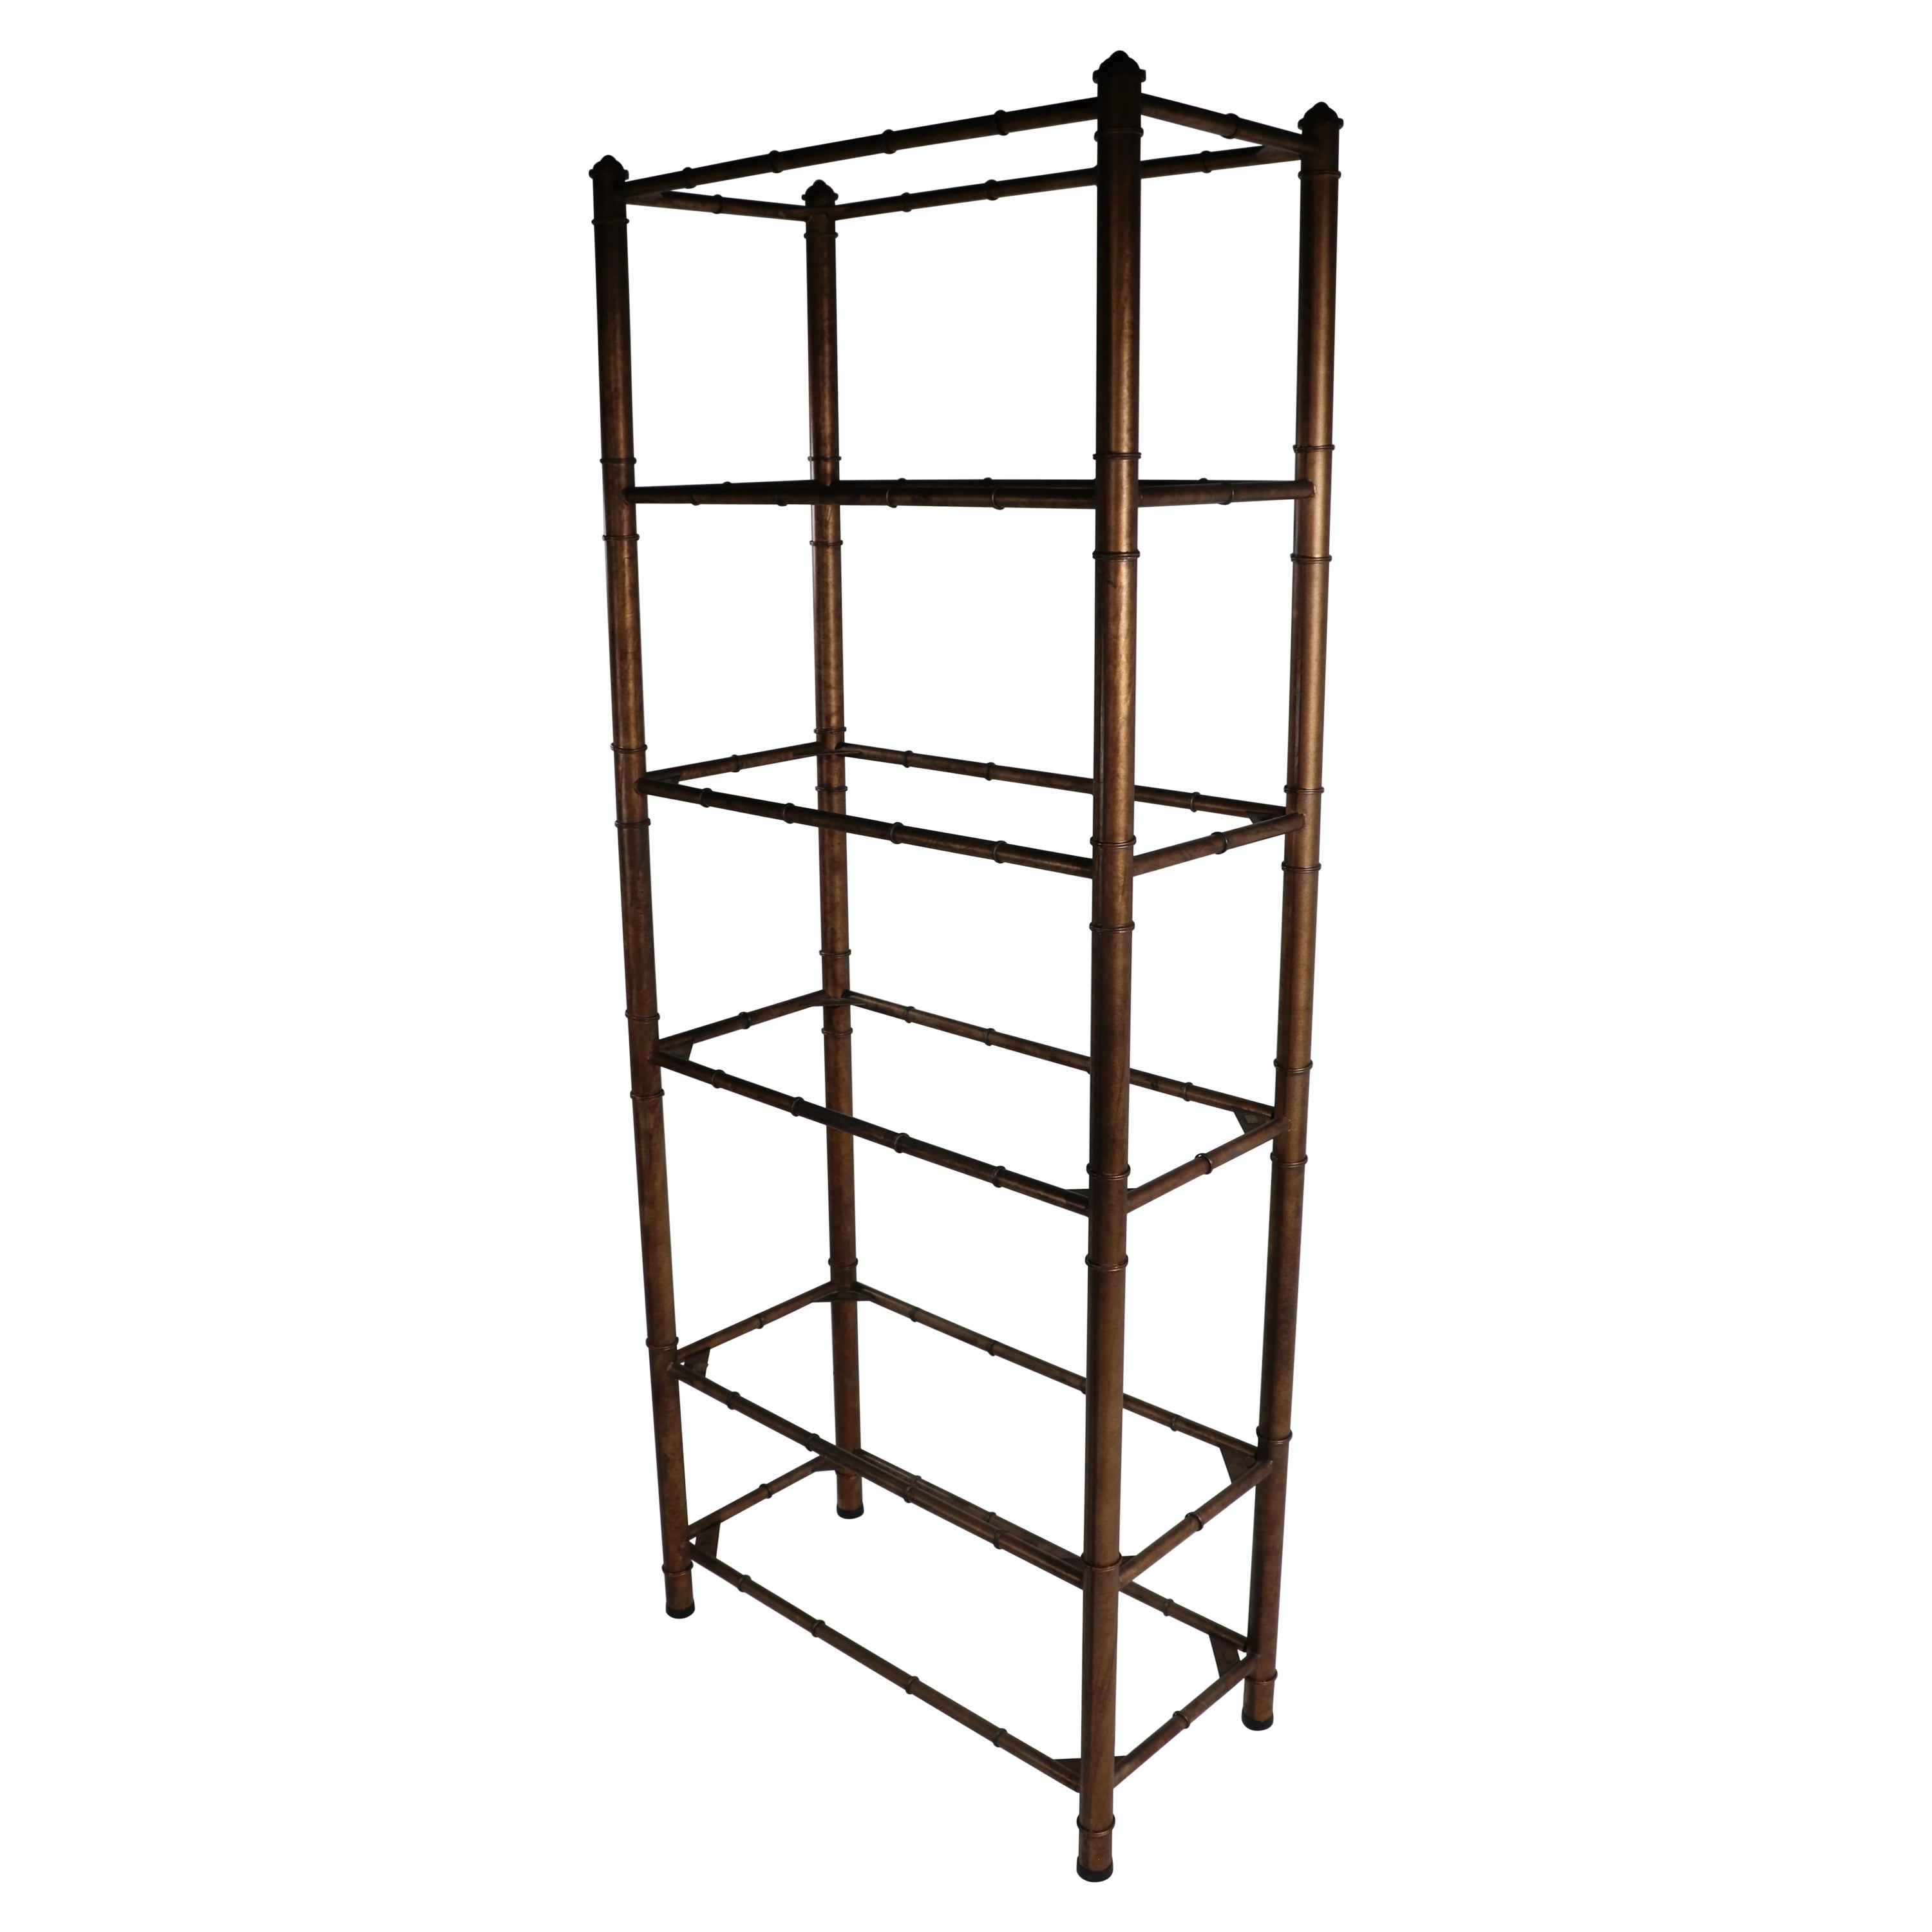 Faux Bamboo Etagere, Display with Glass Shelves